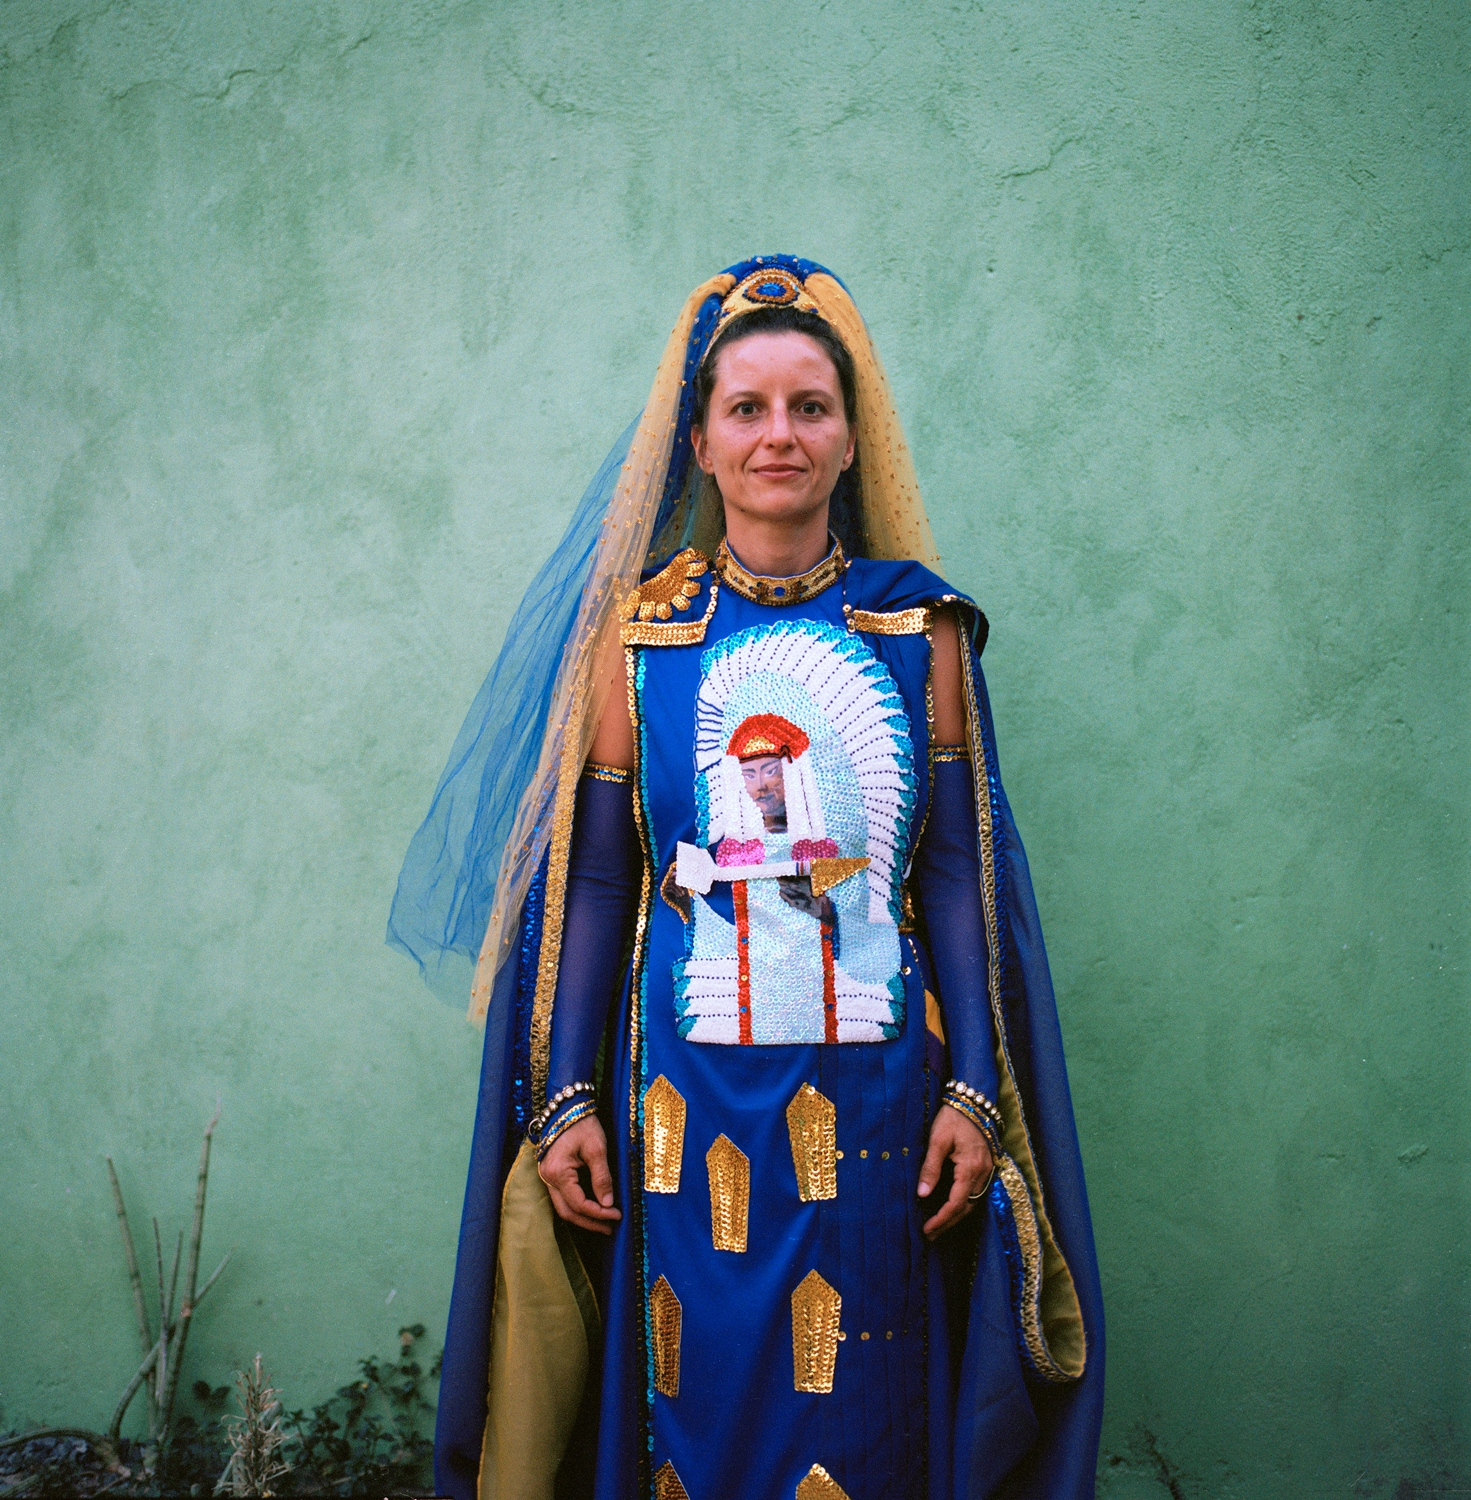 Alice stands for a portrait wearing her moon nymph gown. Cavalcante do Goais, 2016.   //  Alice posa para un retrato usando su traje ceremonial de ninfa luna. Cavalcante do Goais, 2016.